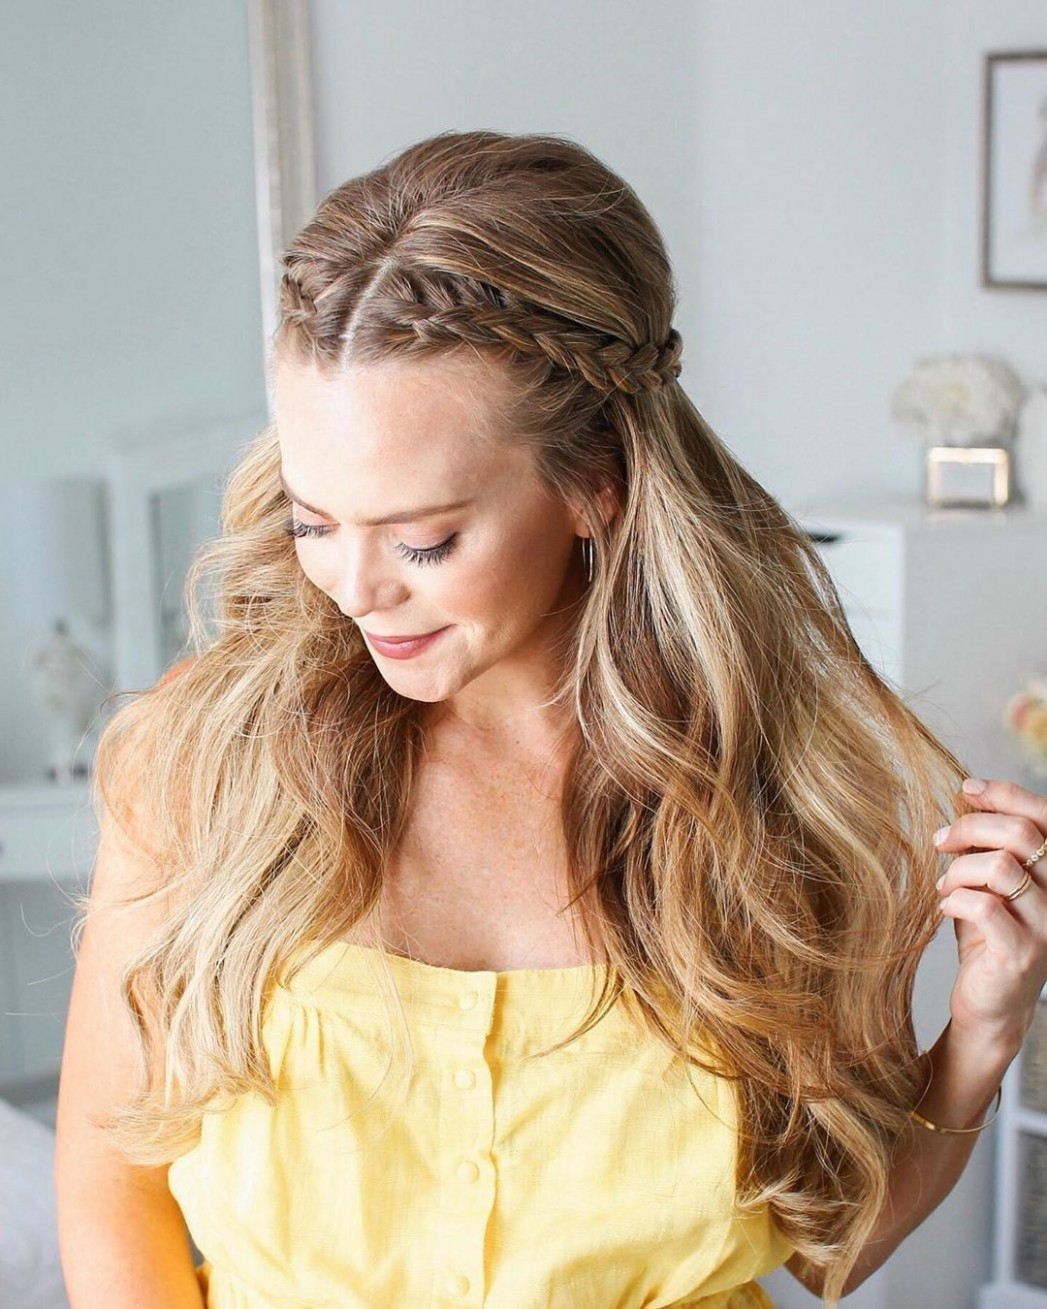 10 Easy Hairstyles for Long Hair You Can Actually Do on Yourself